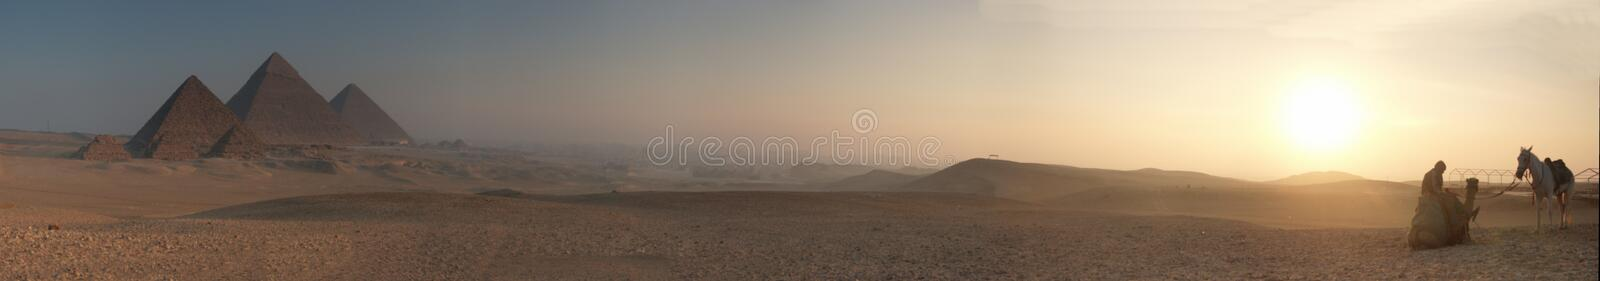 Pyramids sunrise blur 5000x878. Picture made during sunrise on the Gizeh plateau. The guide with horse and cemal on the right. The Pyramids on the left royalty free stock images